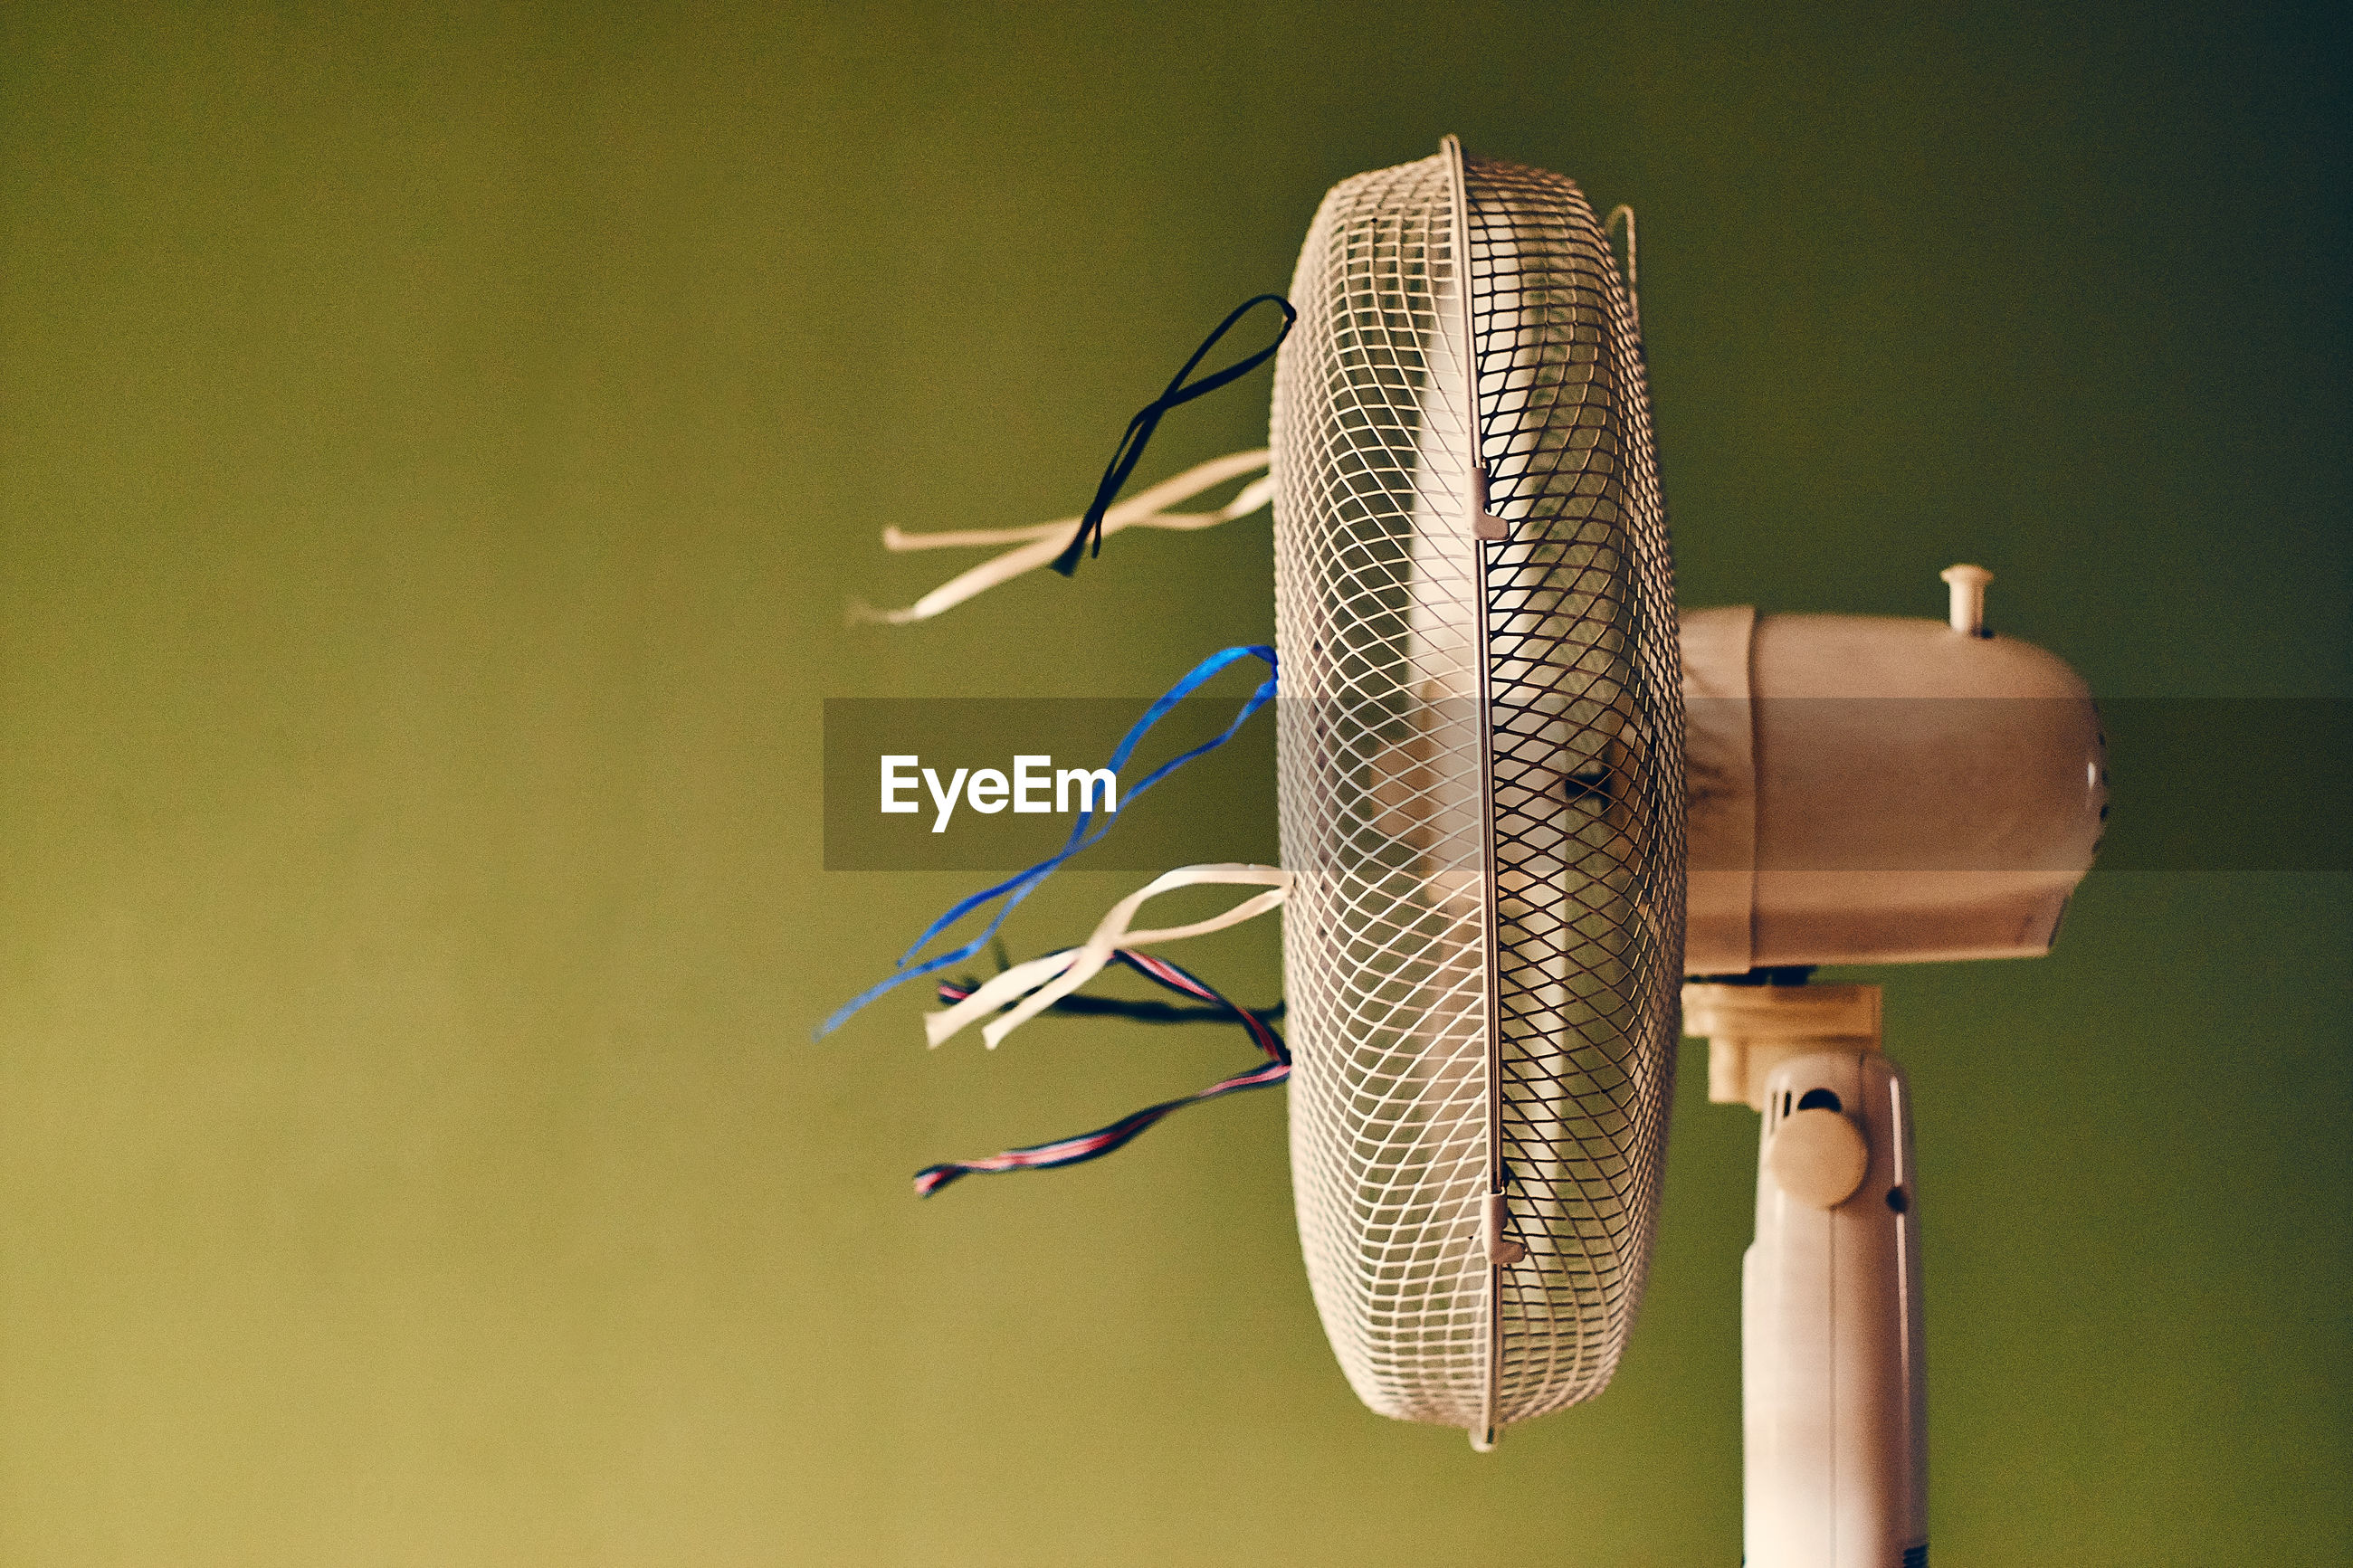 Close-up of electric fan against green wall